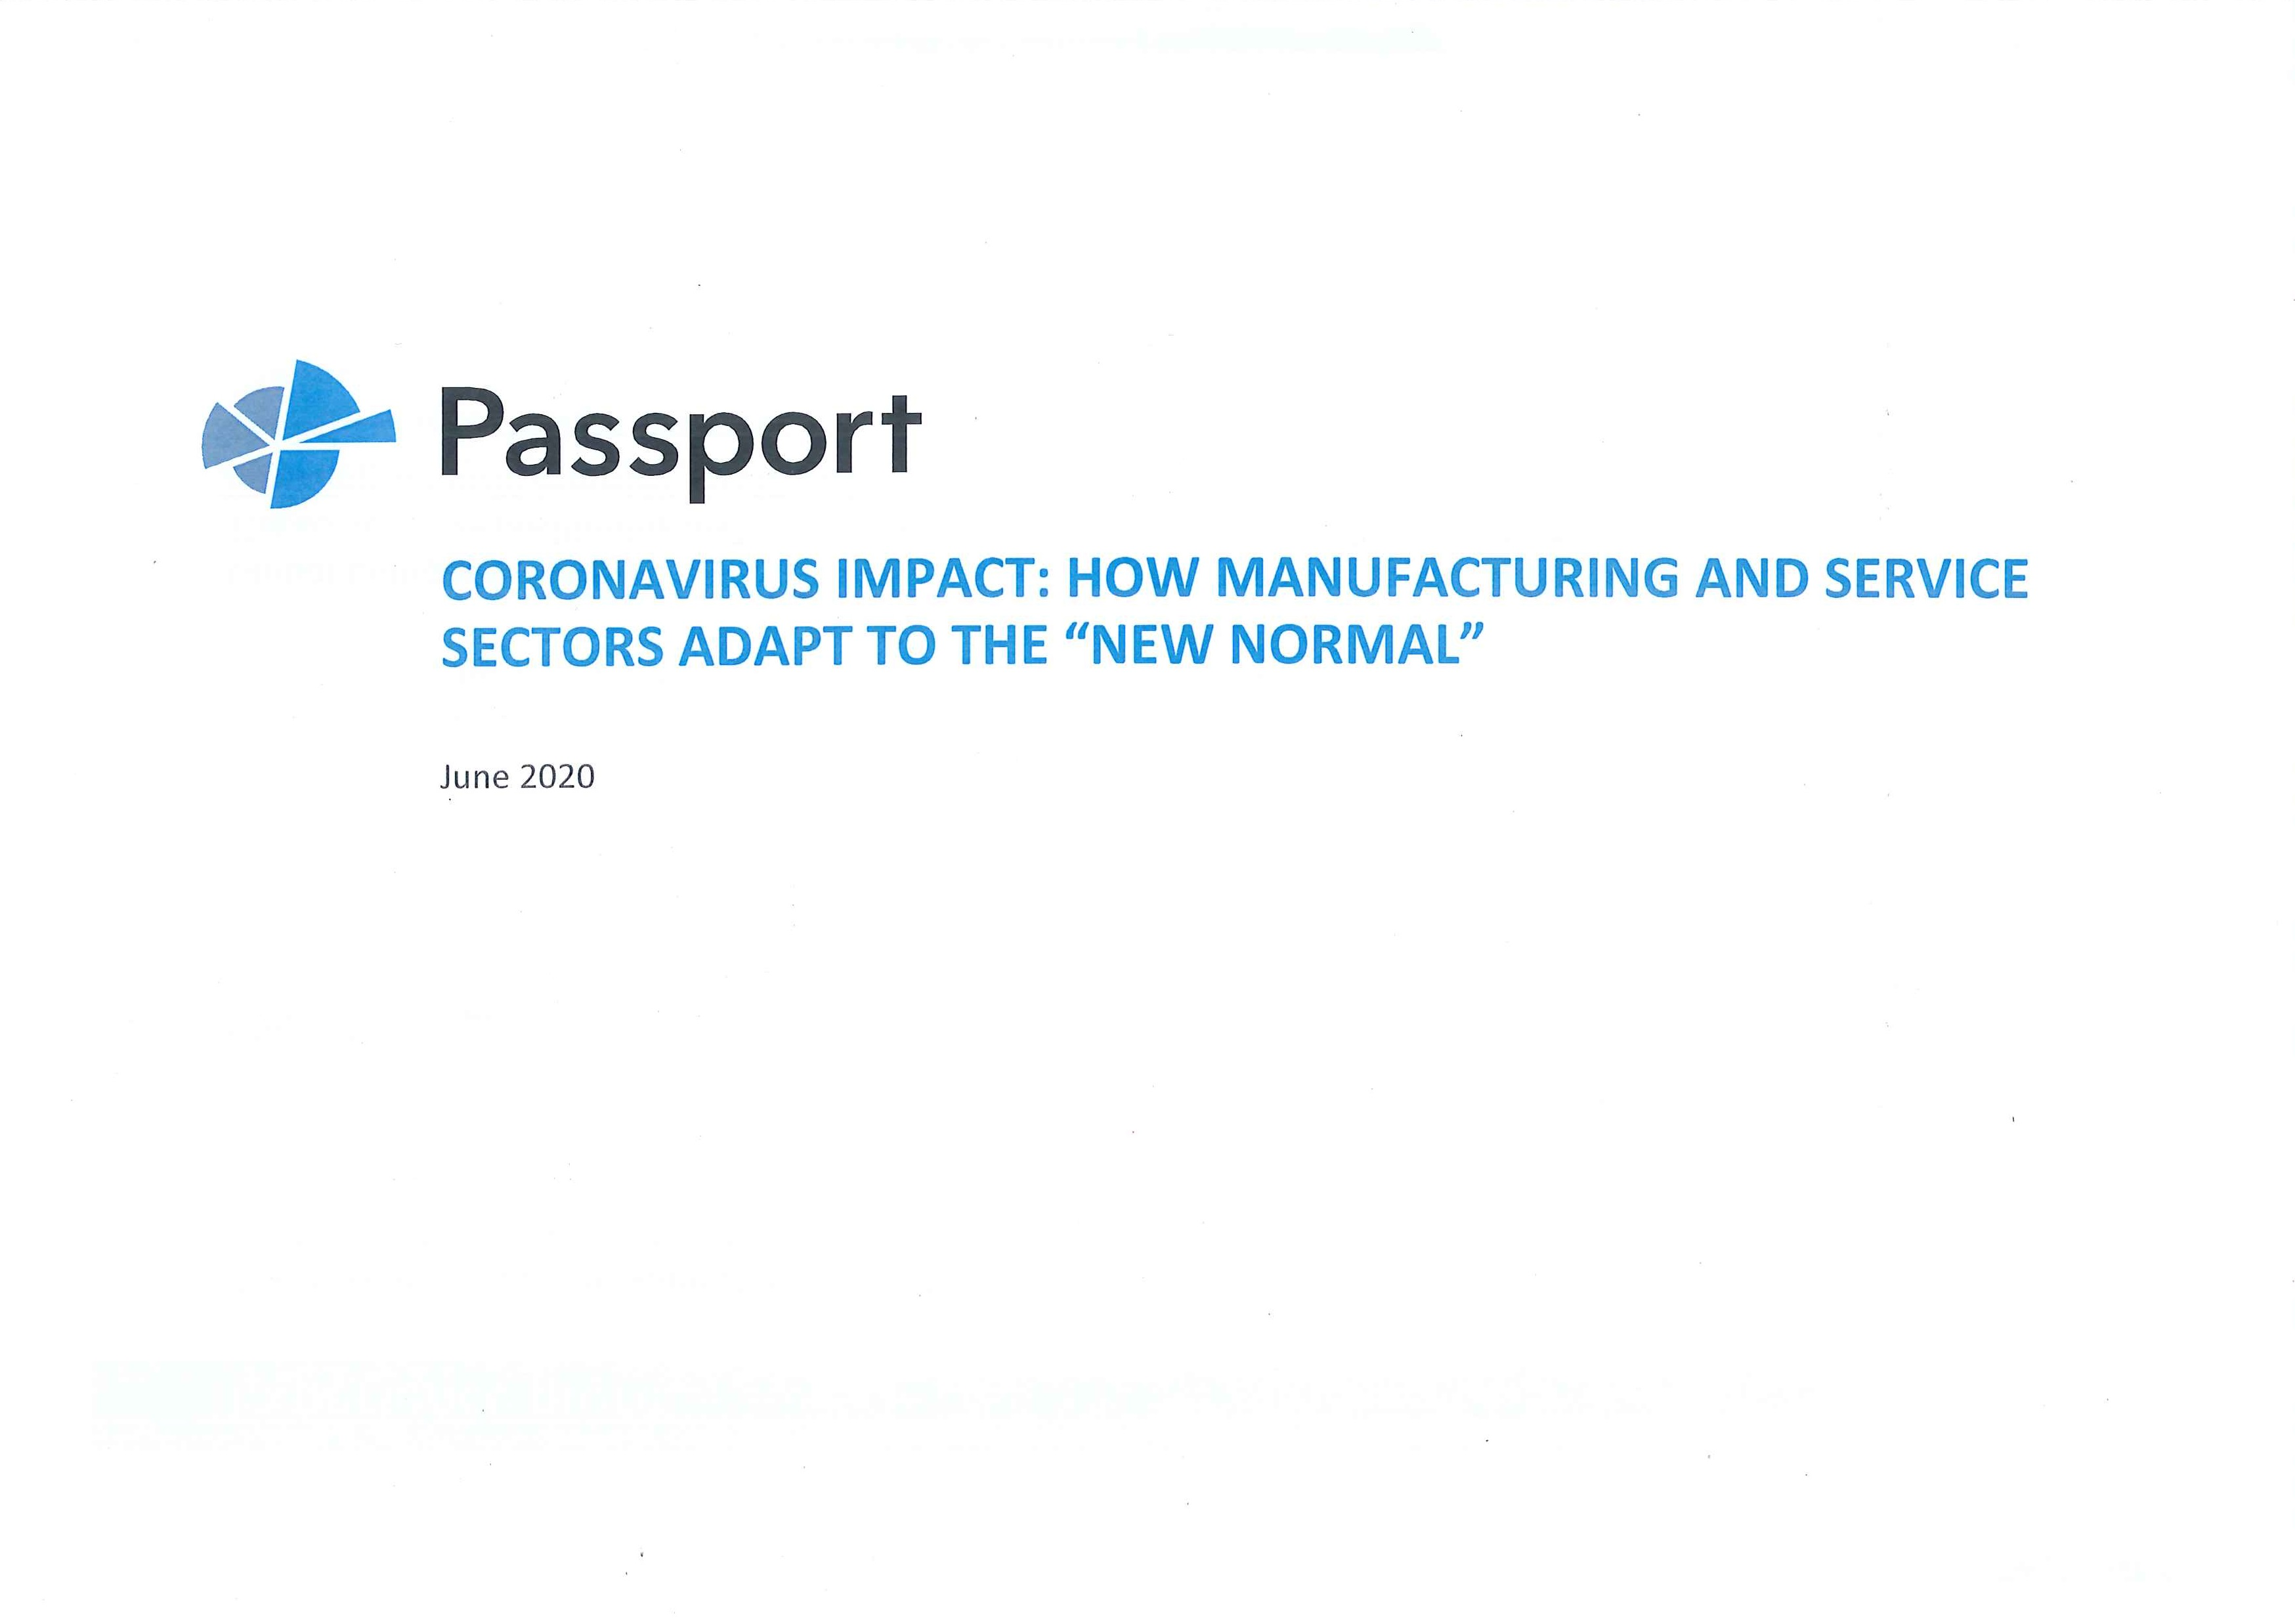 """Coronavirus impact [e-book]:how manufacturing and service sectors adapt to the """"new normal"""""""